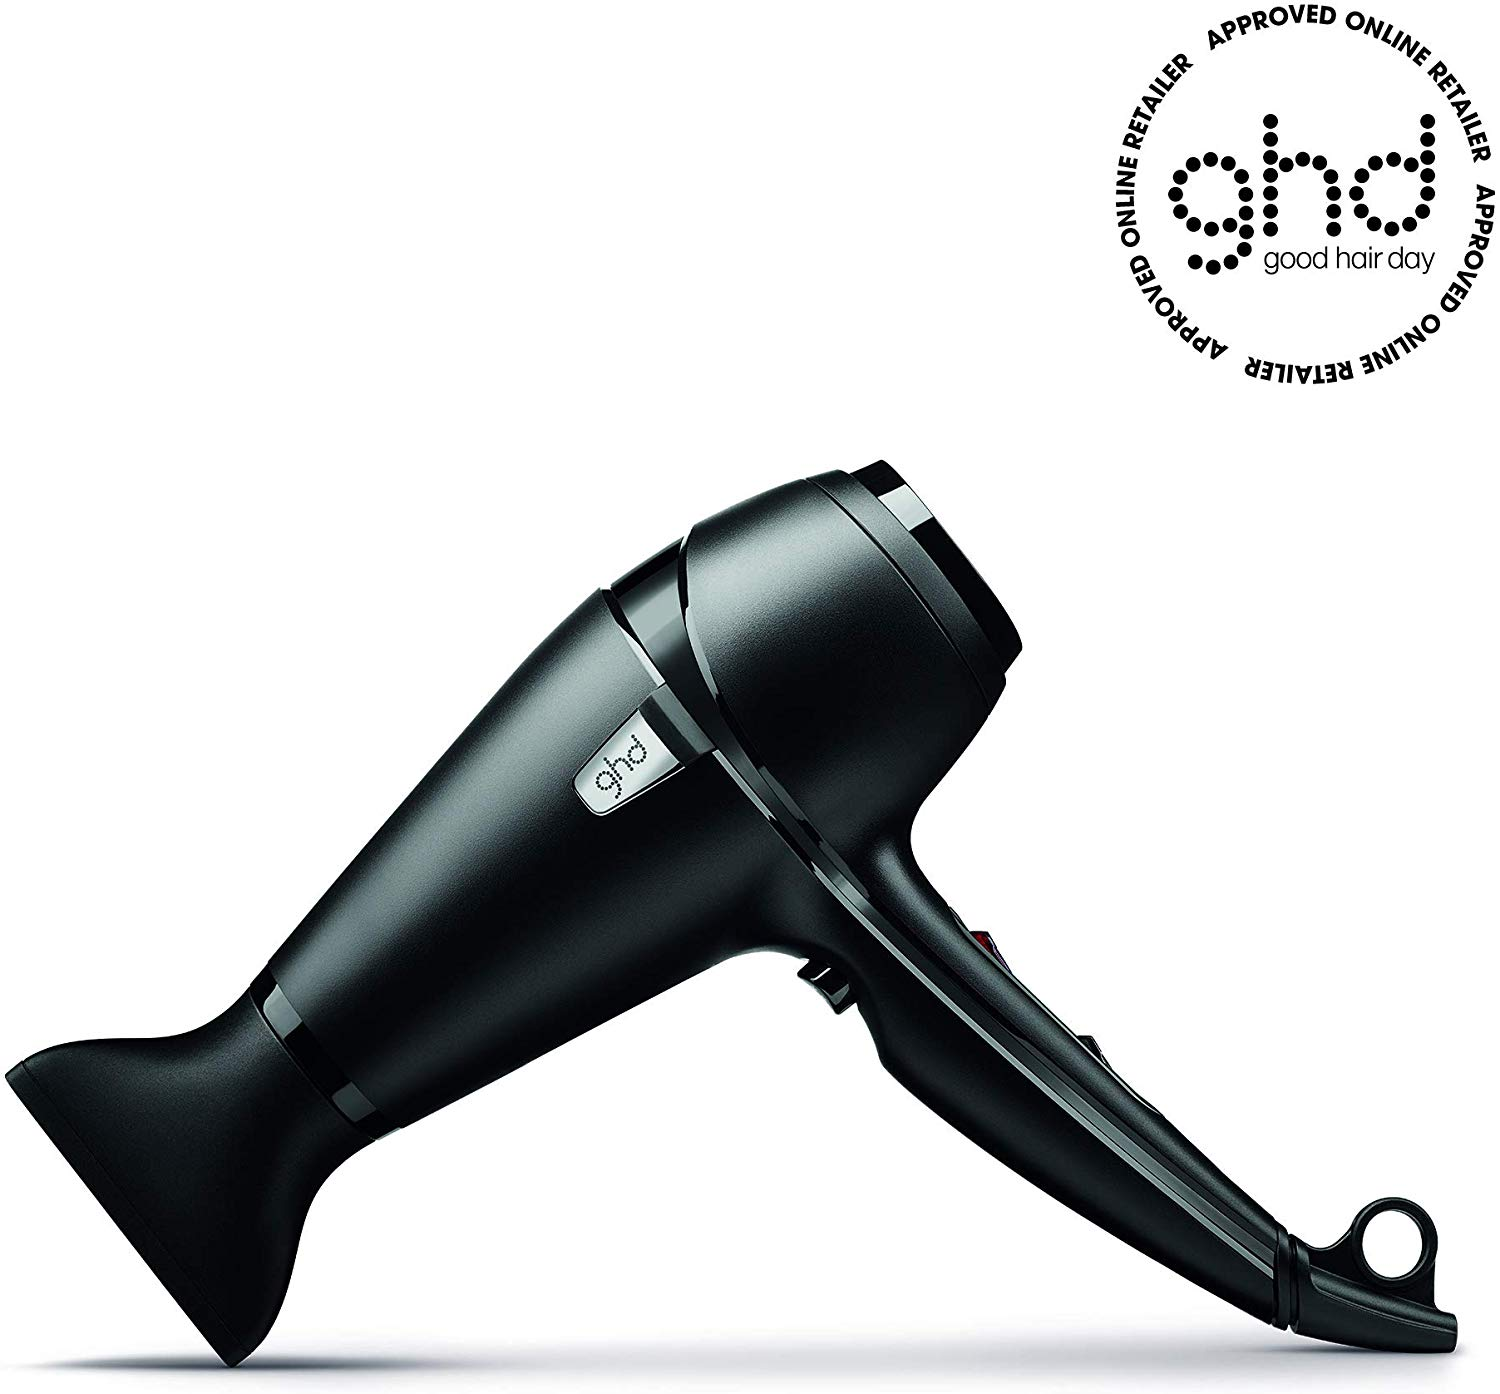 Image of the black GHD air hairdryer